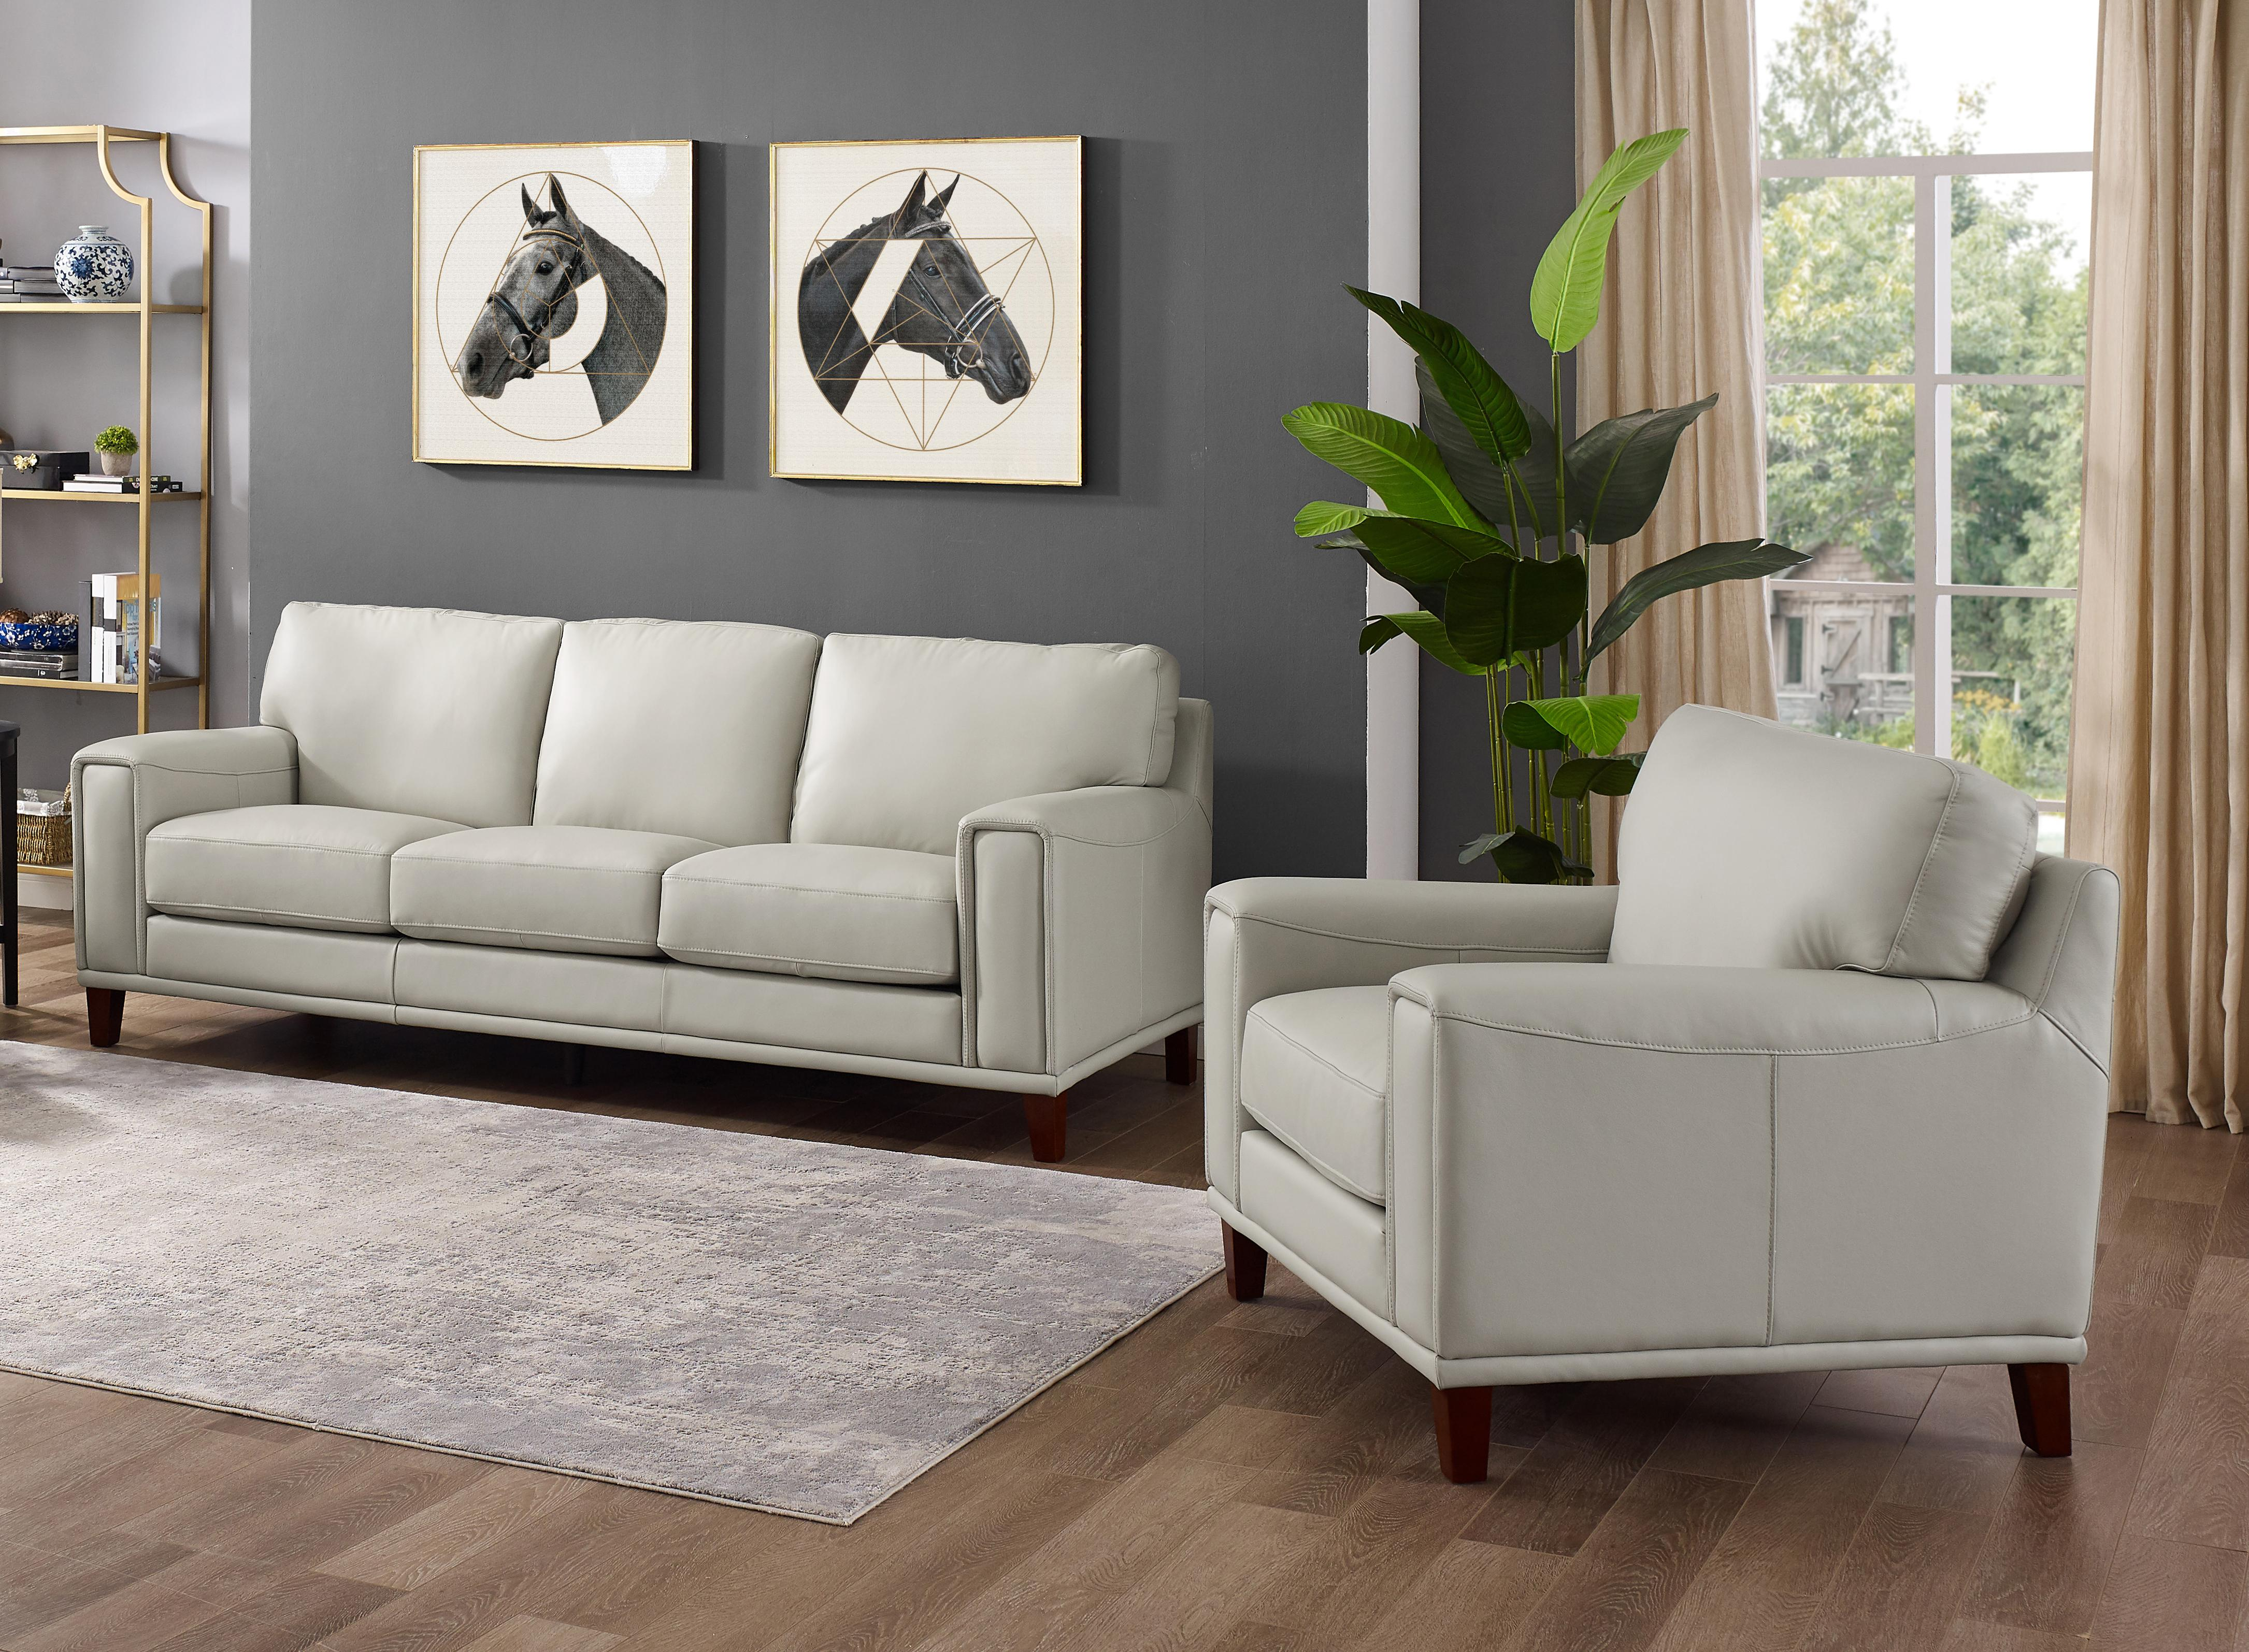 Fantastic Hydeline Vallejo Light Grey Sofa And Chair Set The Classy Home Machost Co Dining Chair Design Ideas Machostcouk